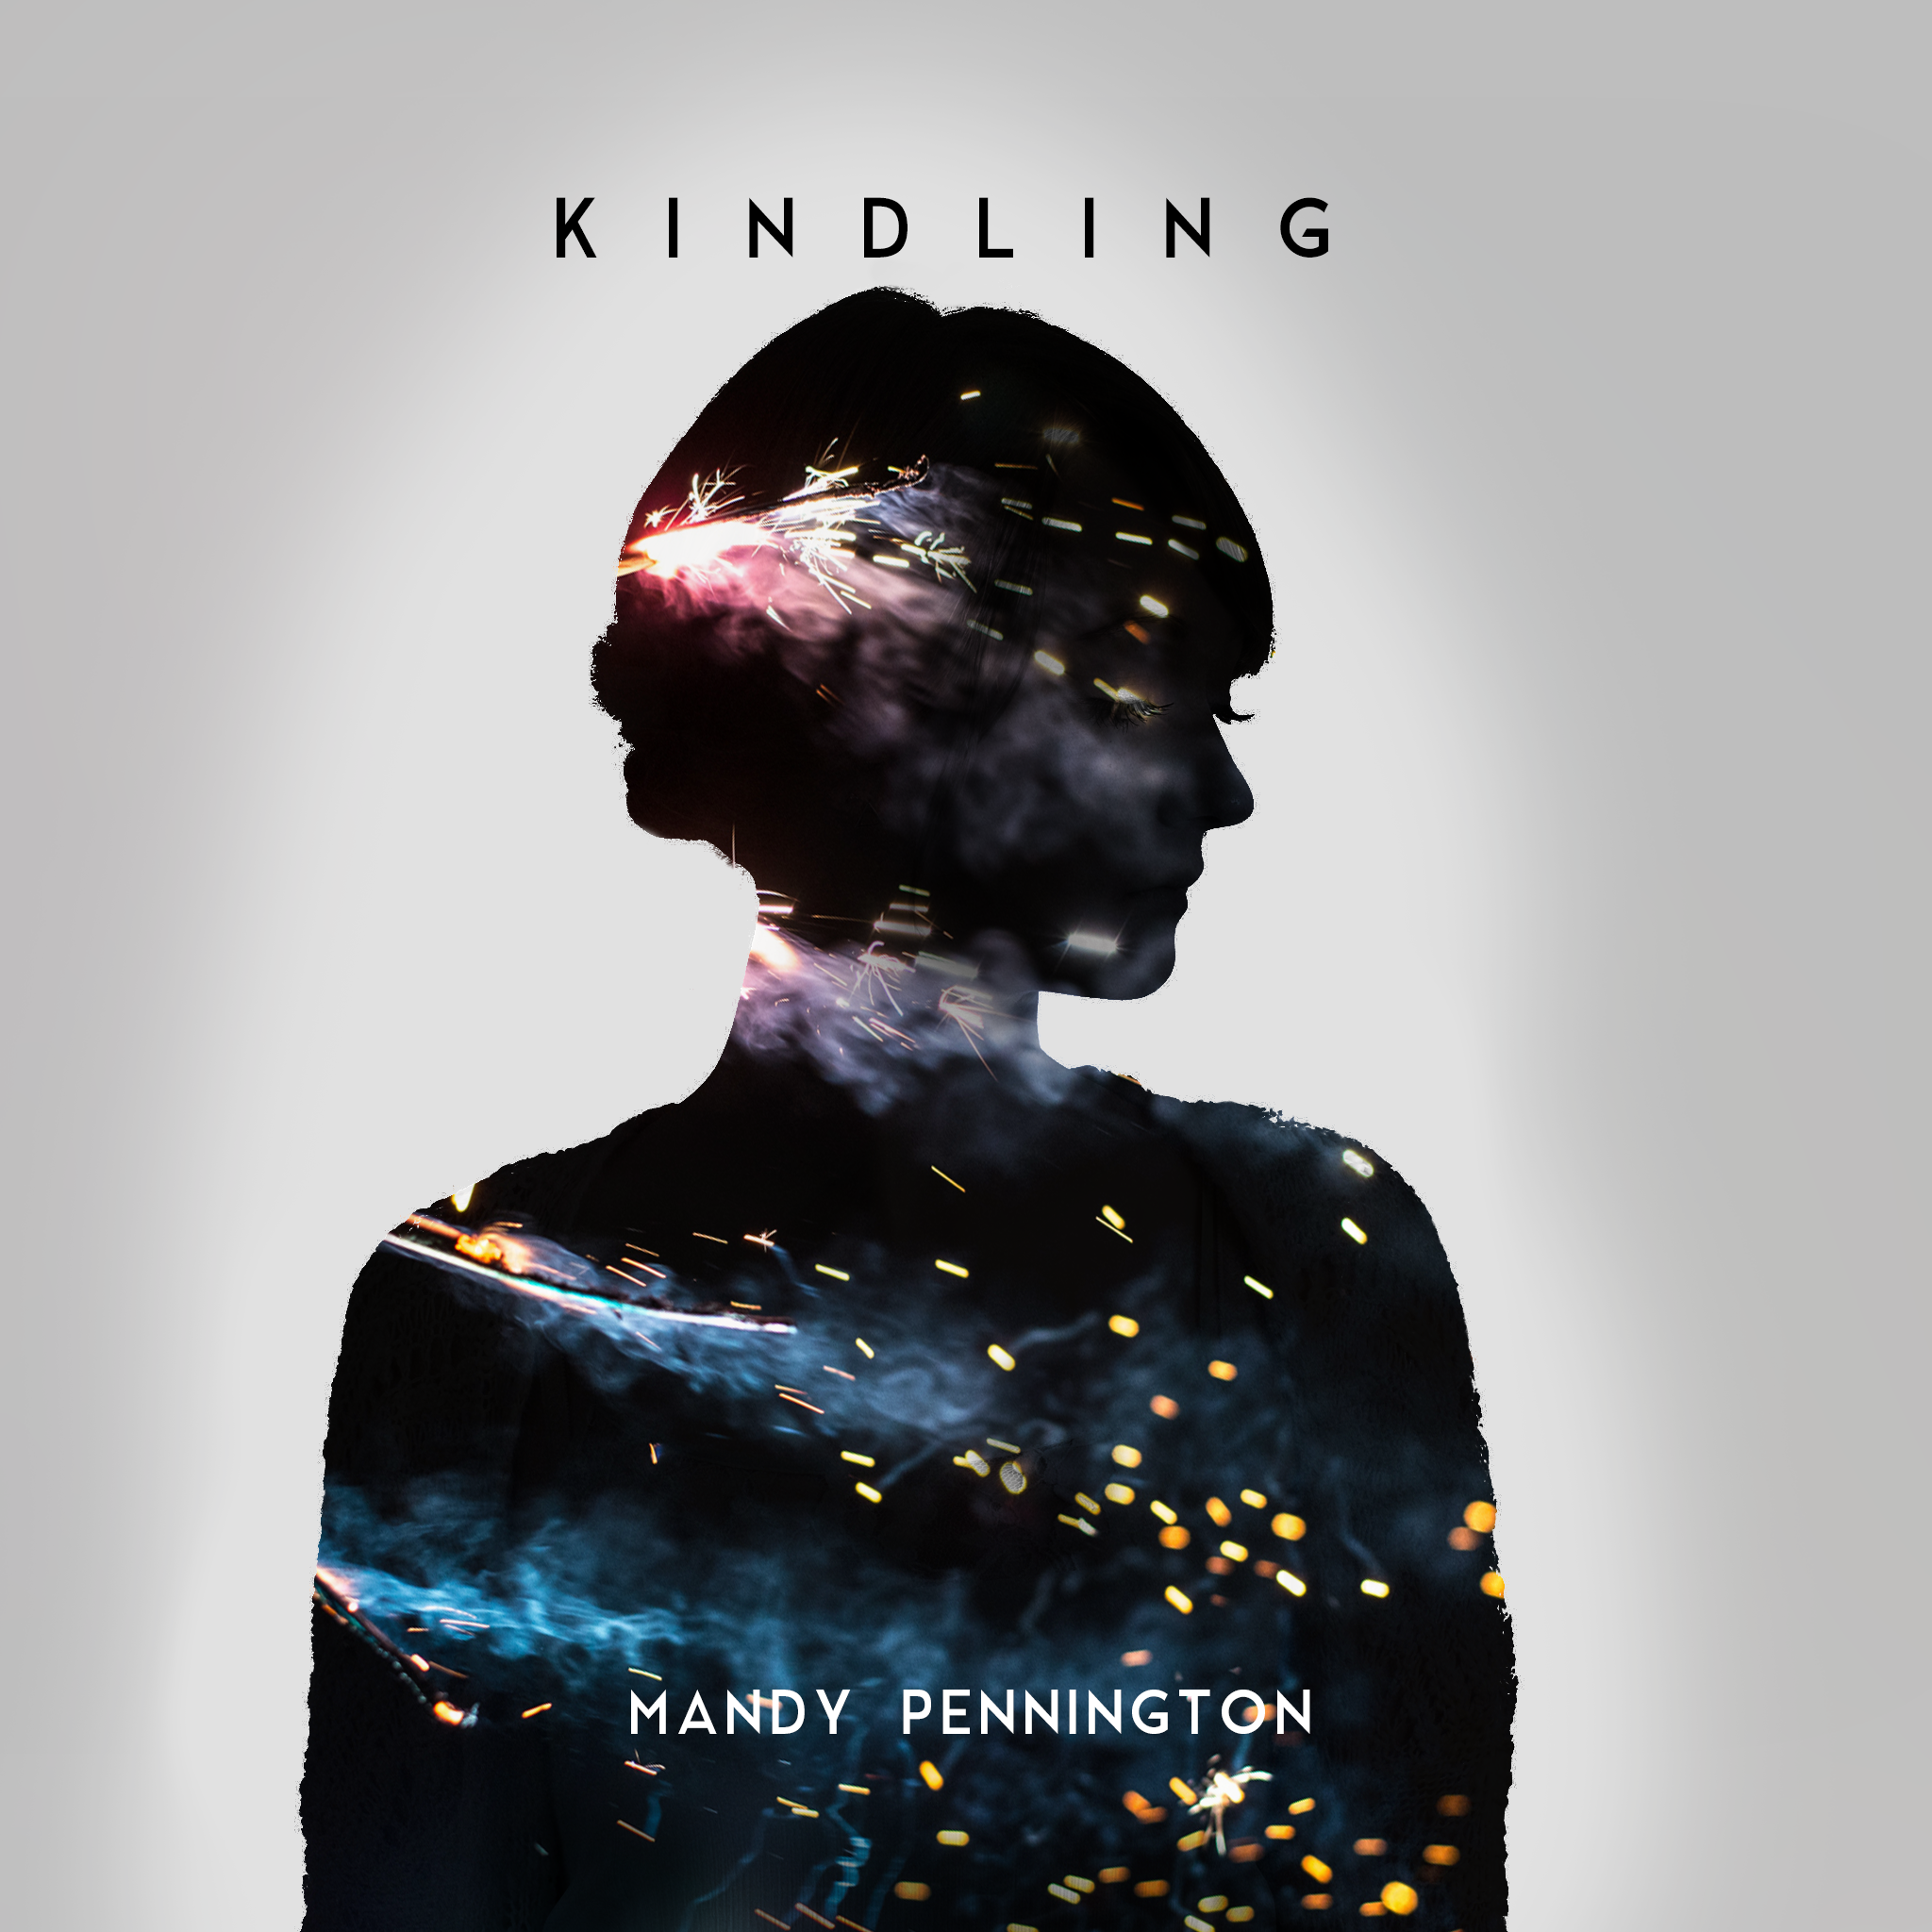 Kindling - released March 7, 2016